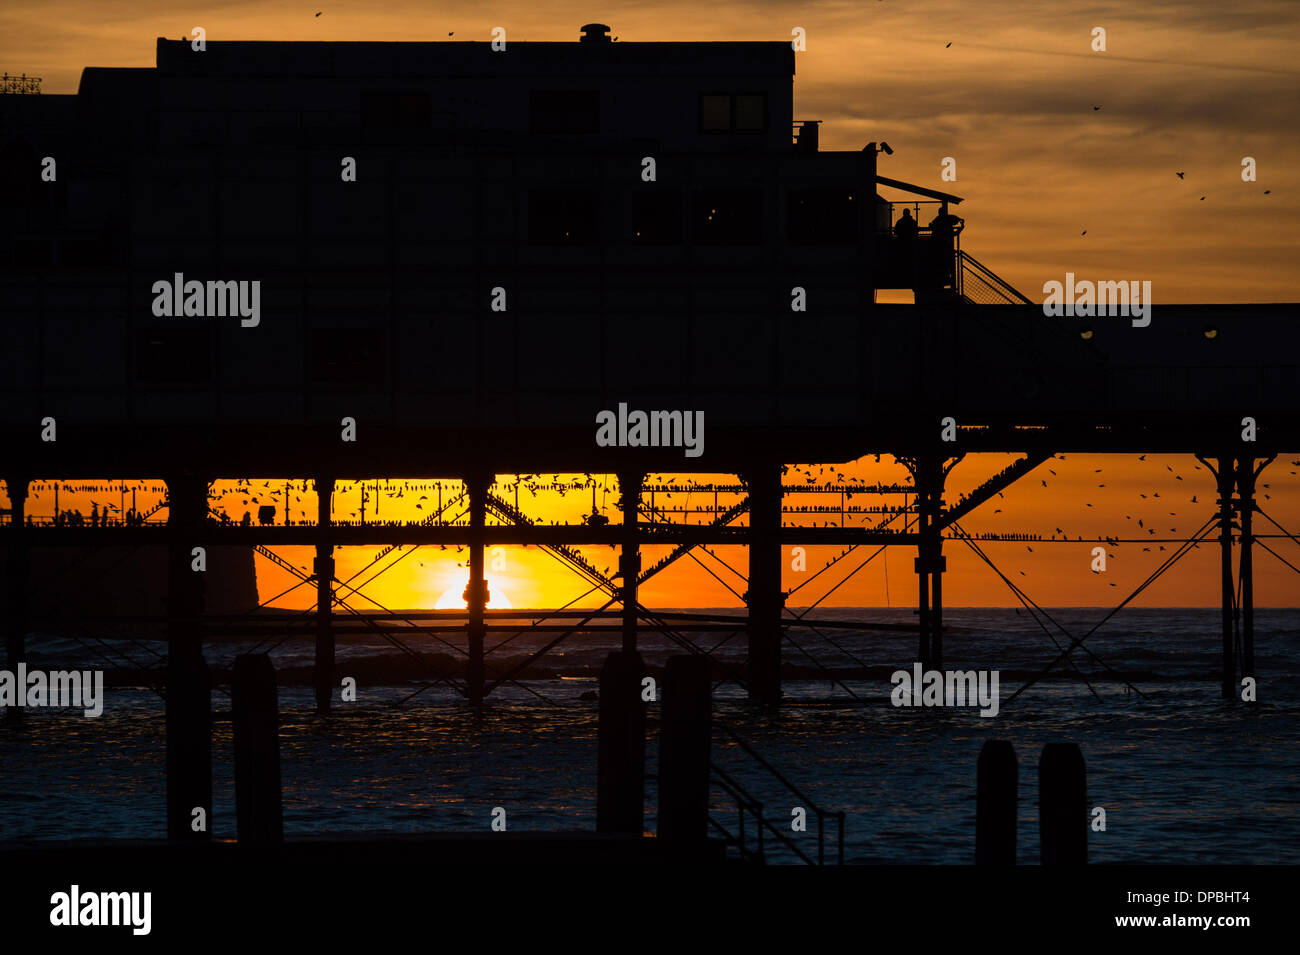 Aberystwyth, Wales, UK. 11th January 2014.   At the end of a week that saw huge storms destroying large parts of the historic Victorian promenade in Aberystwyth, tens of thousands  of starlings still return to roost under the pier at dusk  photo Credit: keith morris/Alamy Live News - Stock Image